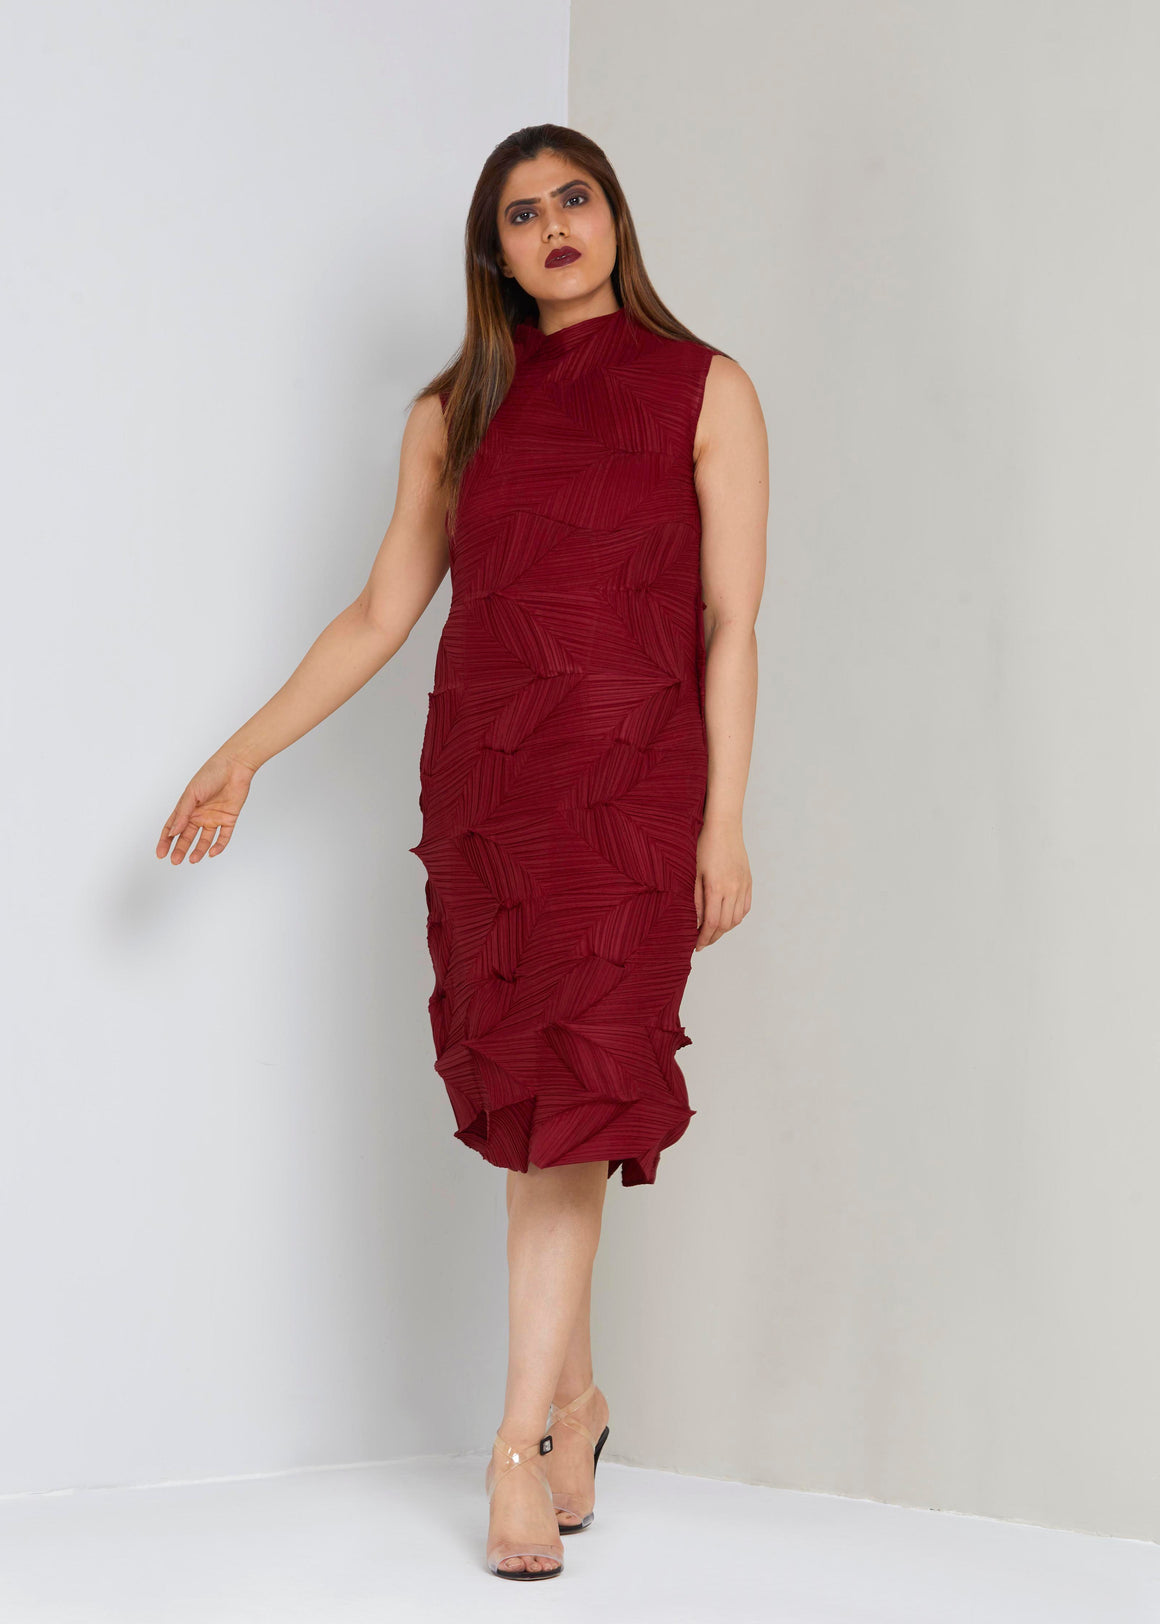 3D Sleeveless Dress - Maroon